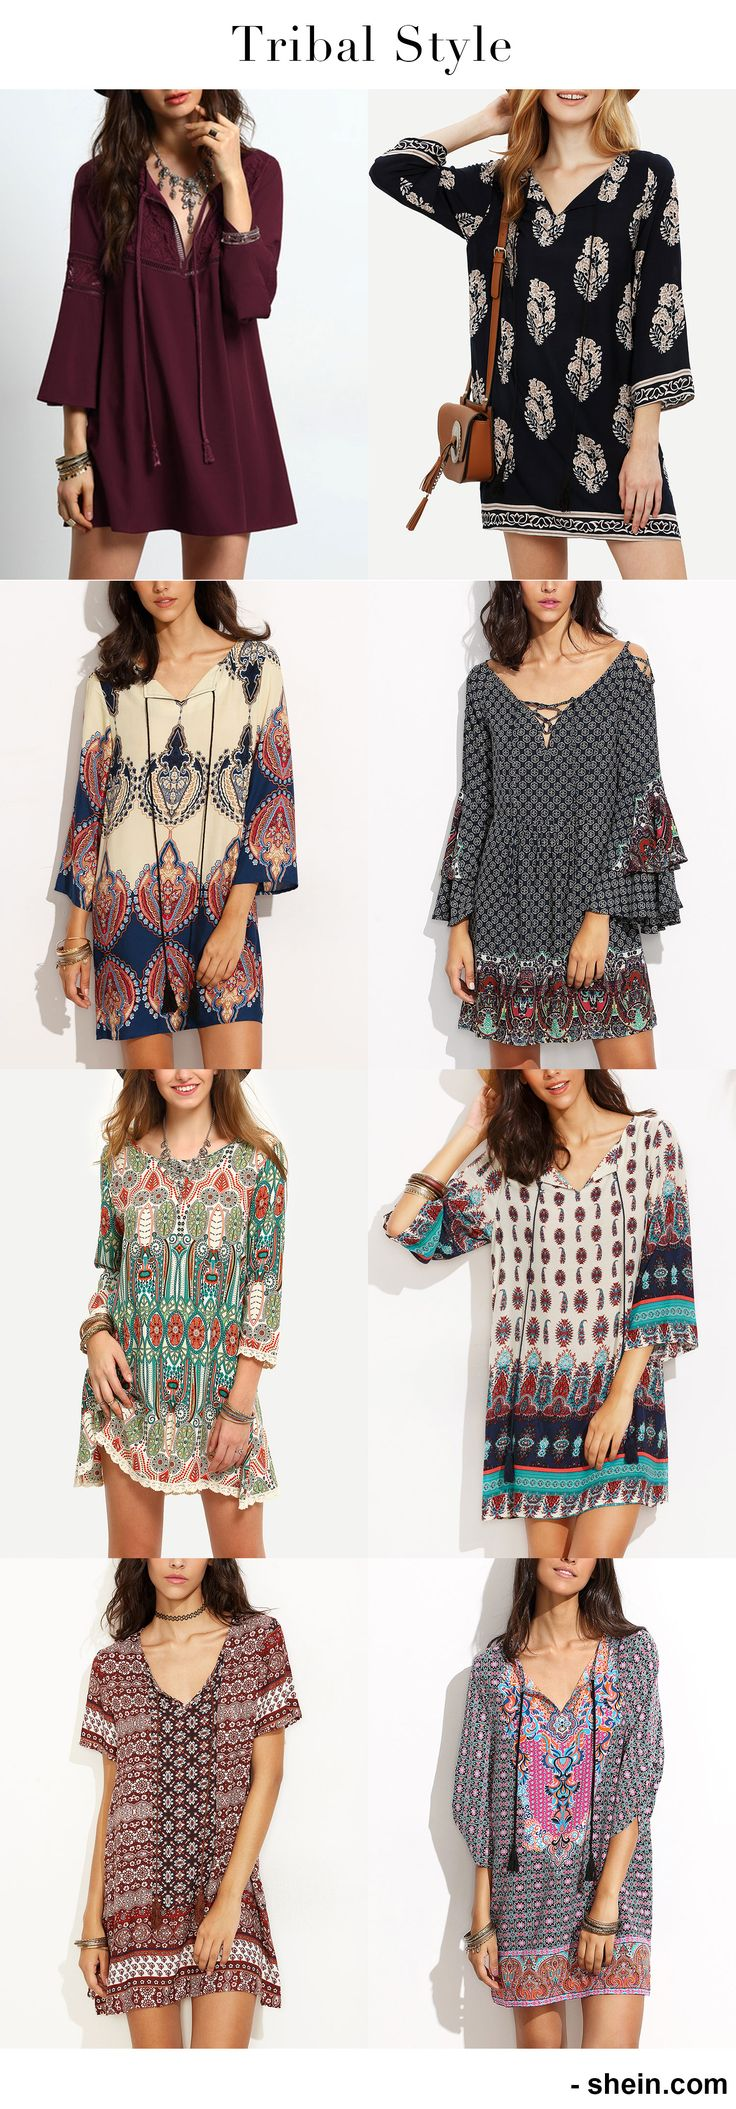 Cheap vintage dress with long sleeve. Start $11.9. 40% off your 1st order!